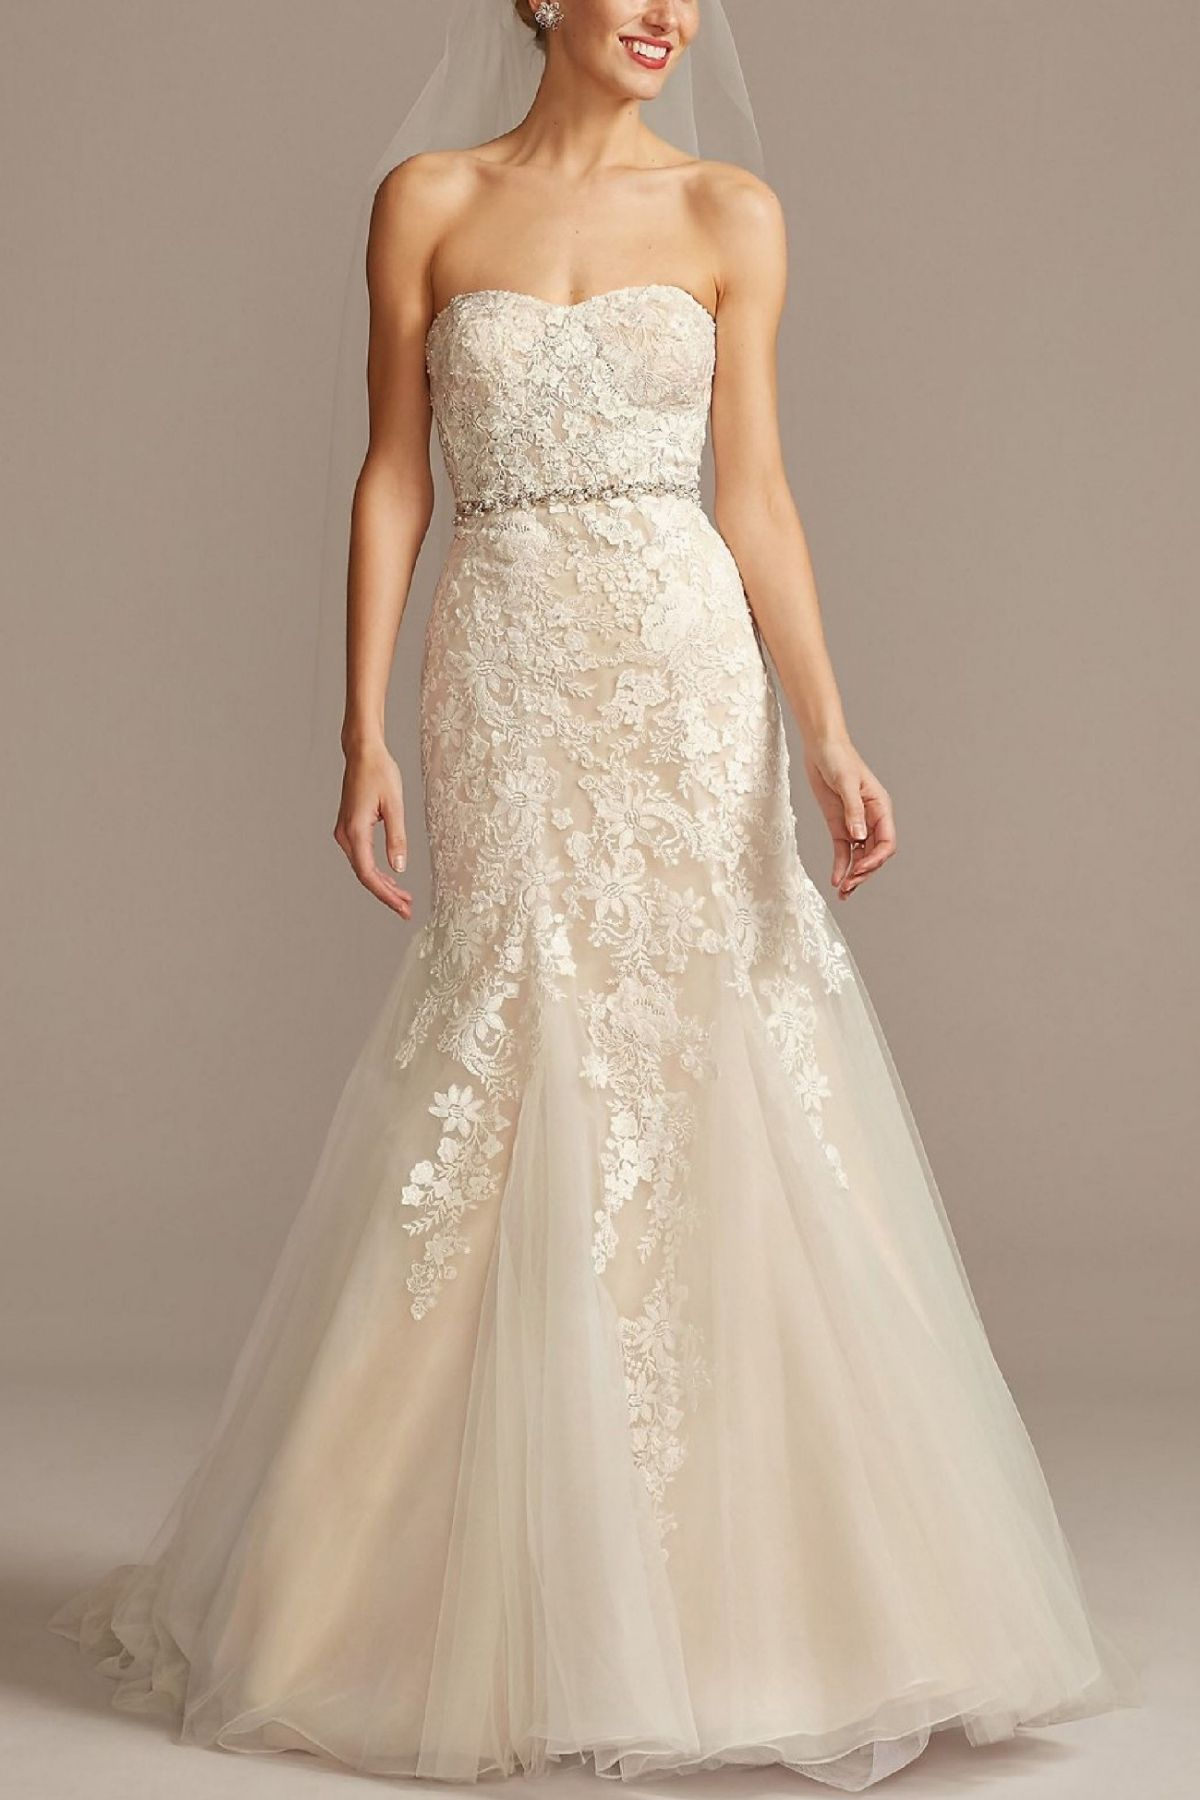 1. Floral Beaded Lace and Tulle Mermaid Wedding Dress -